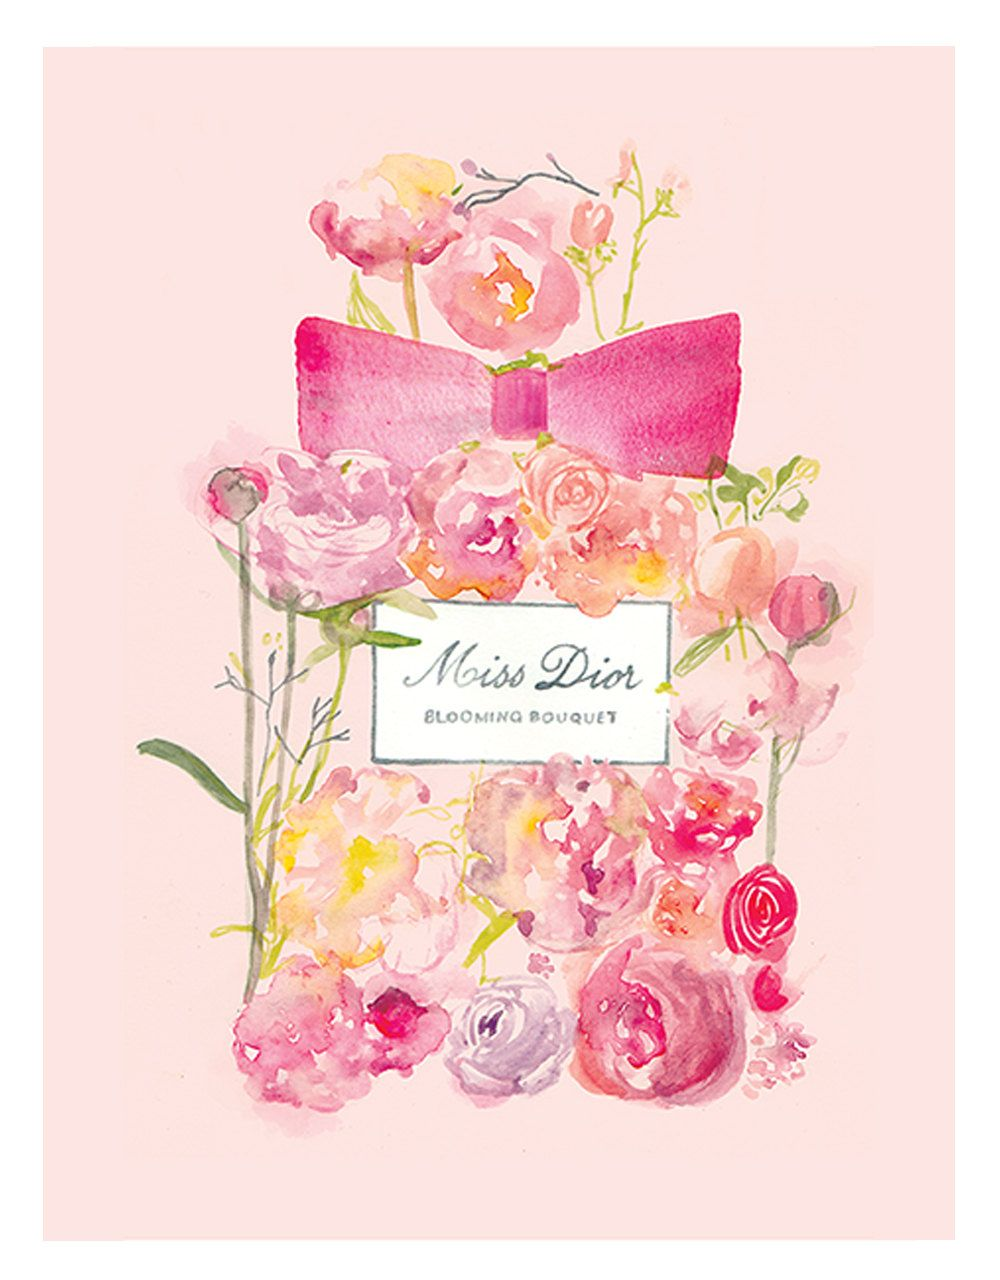 11b38a021 Miss Dior Blooming Bouquet perfume by mbaileyillustrations on Etsy ...